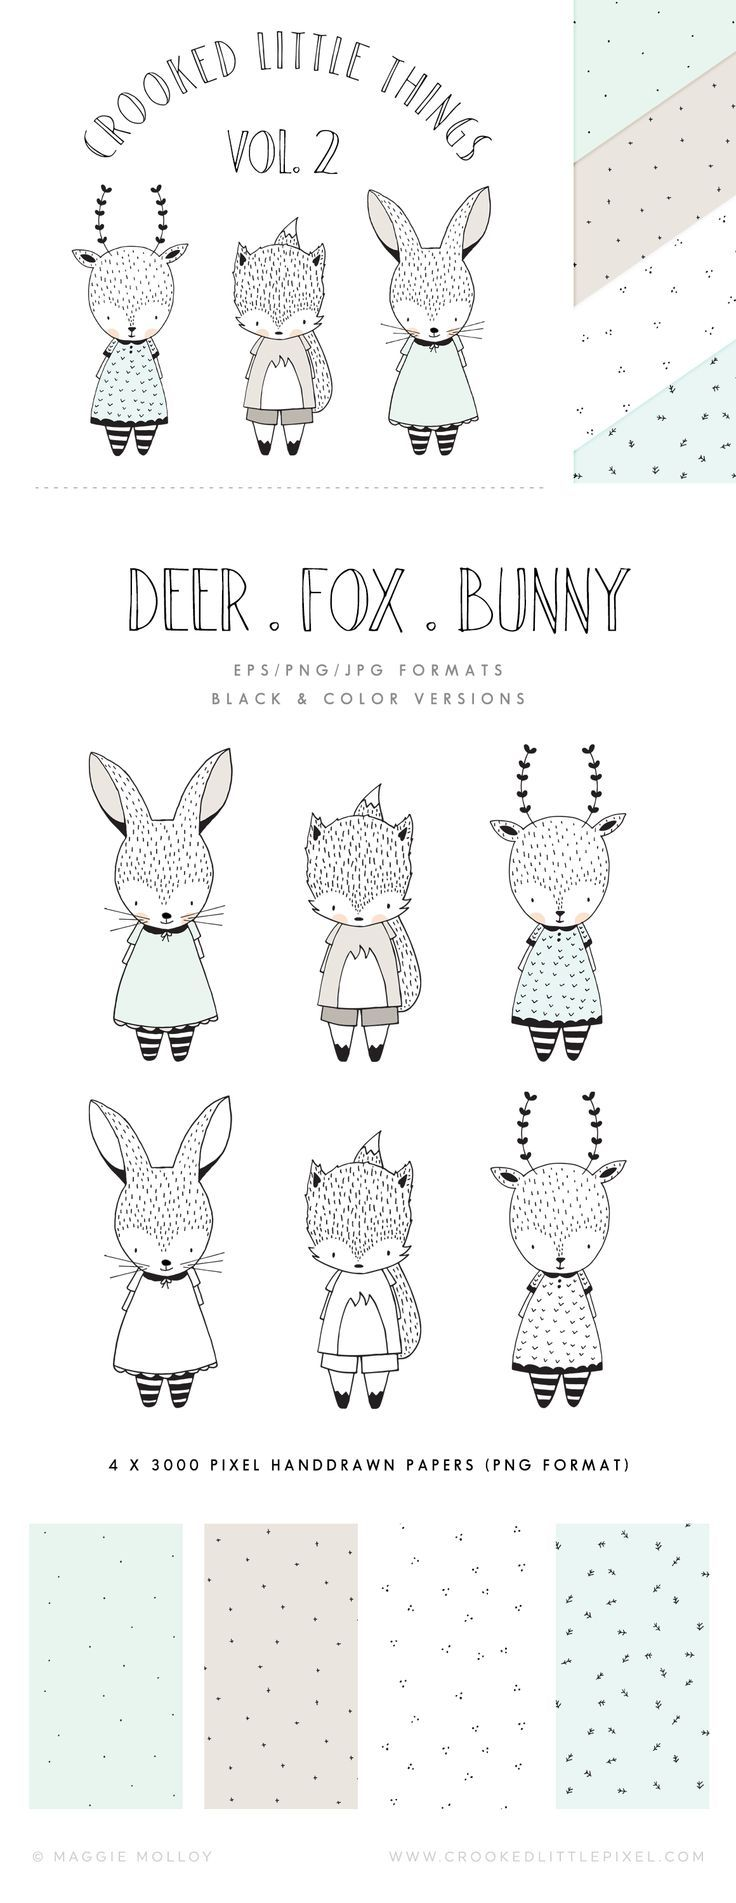 Crooked Little Things Vol.2 Animals: Set of 3 hand drawn animal characters + 4 matching hand drawn seamless patterns. Great for greeting cards, stickers, clothing etc.